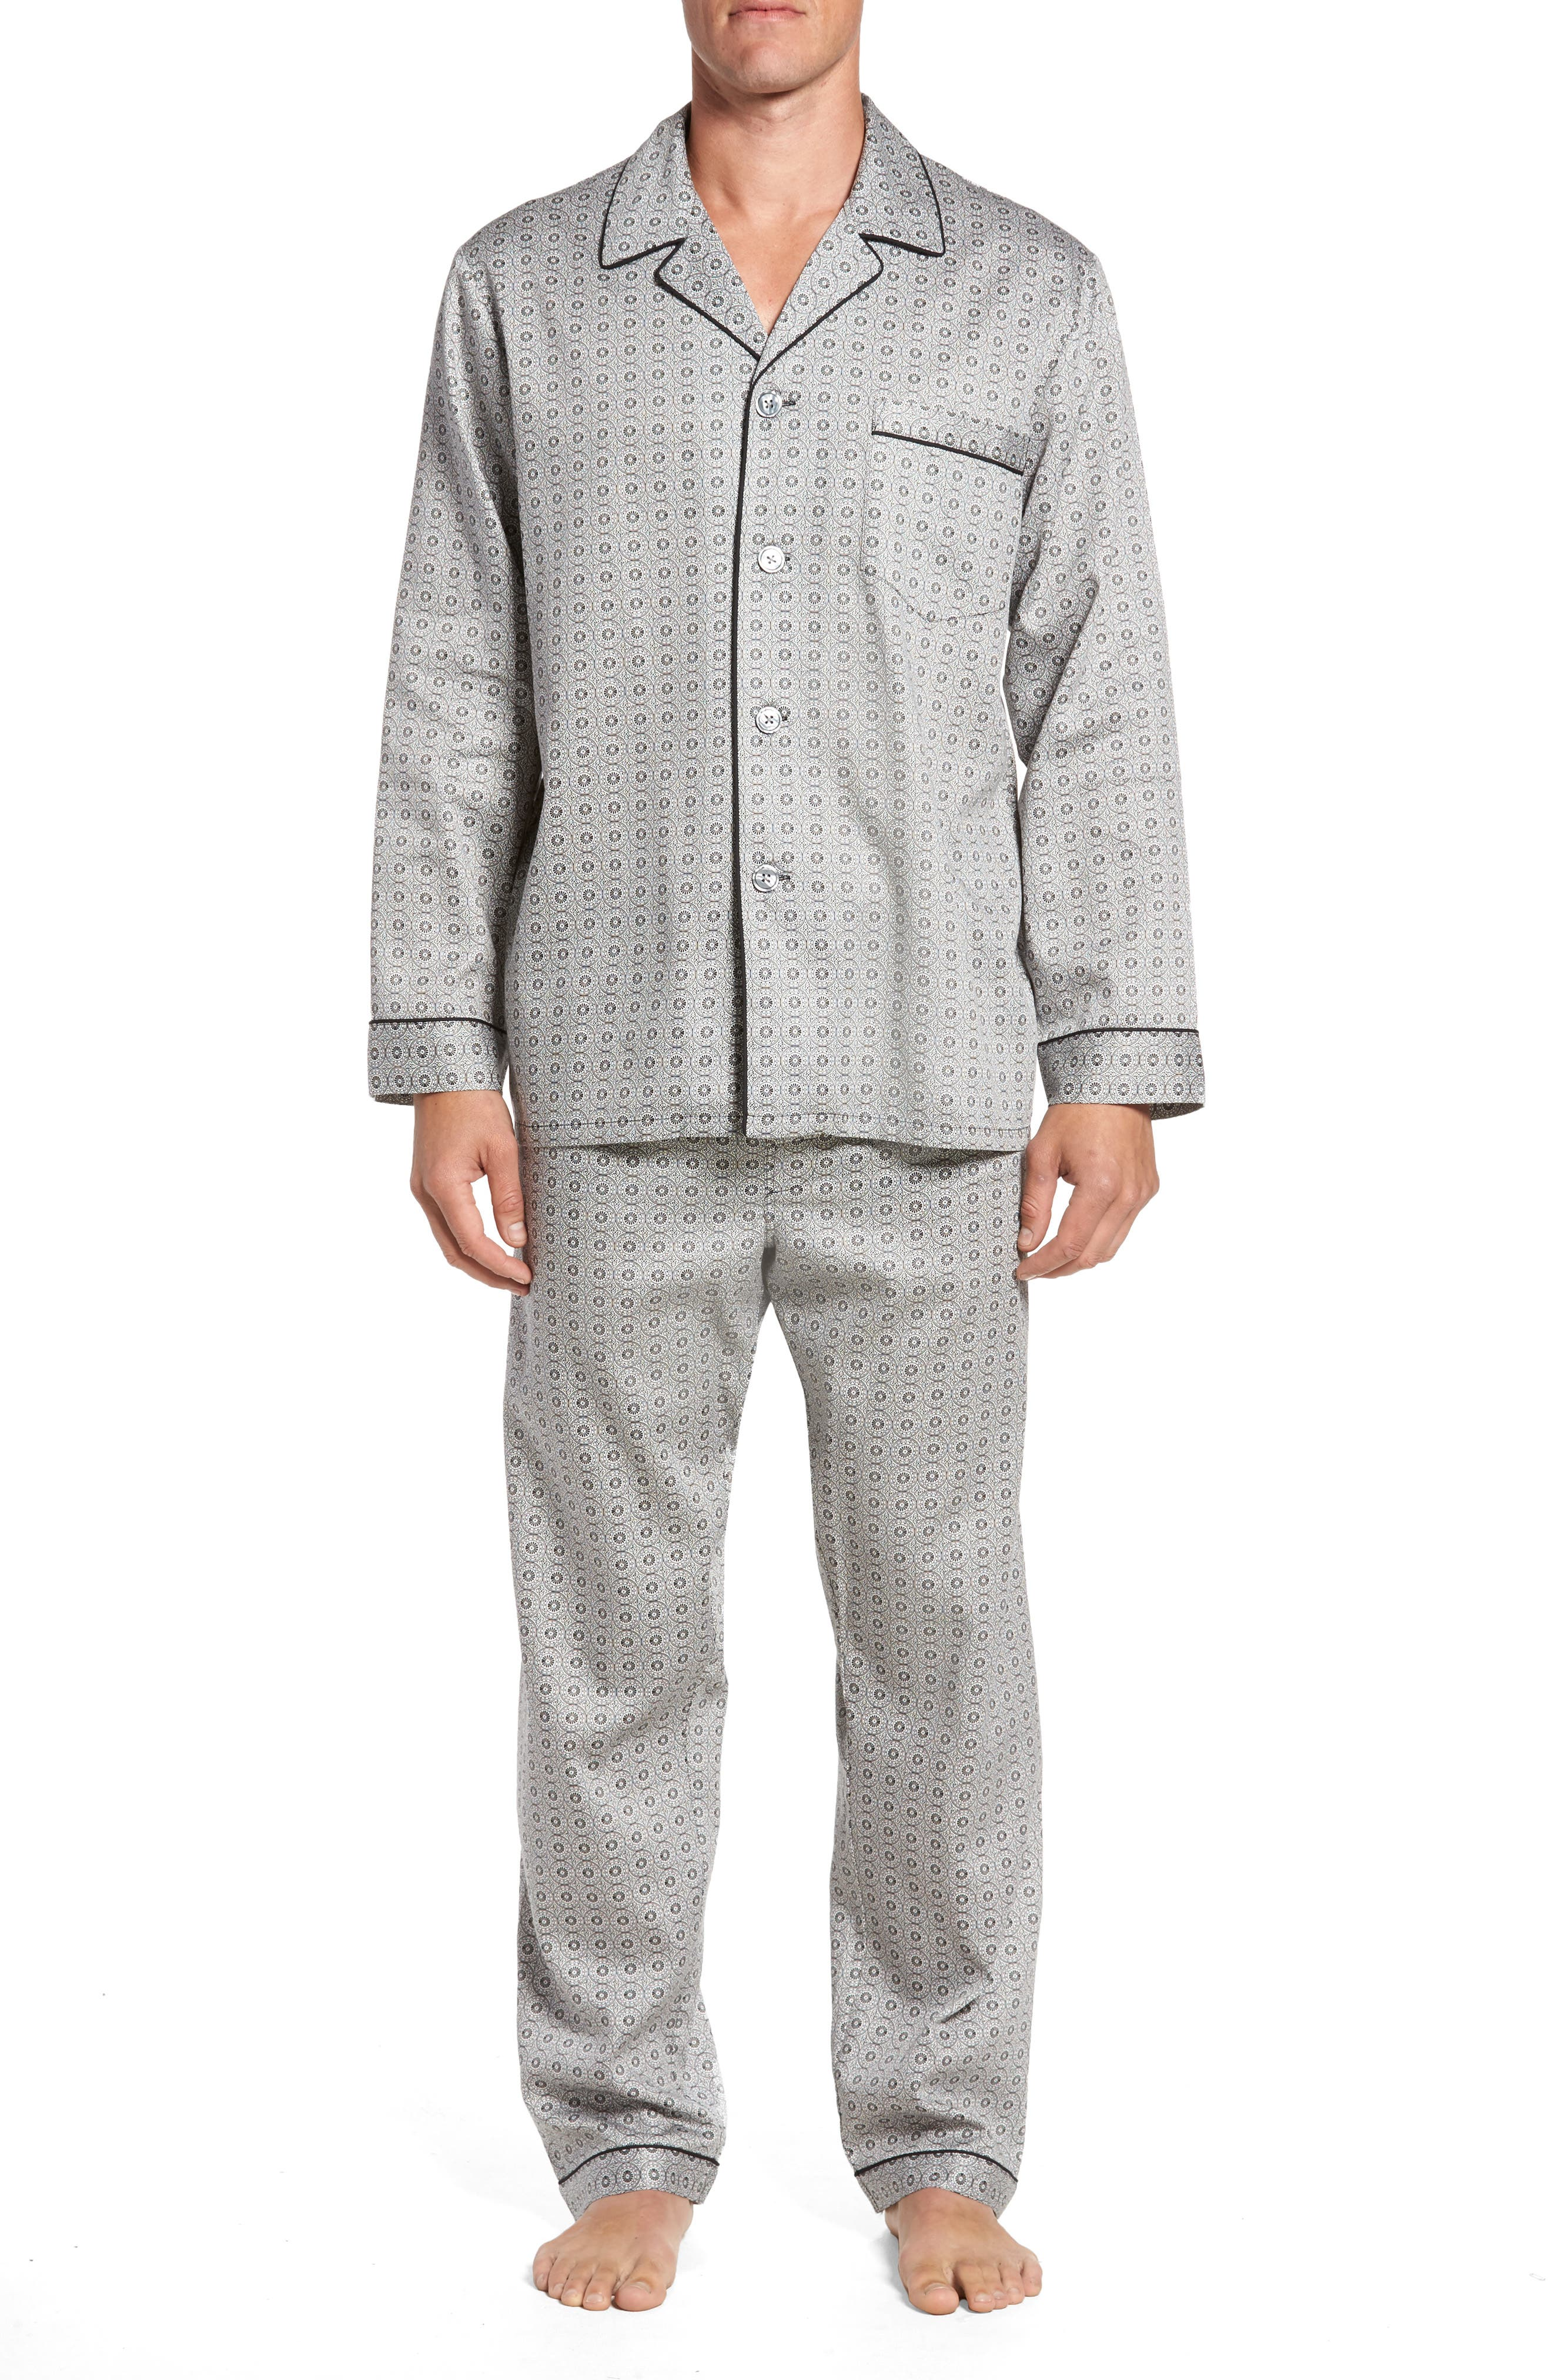 Majestic International Winterlude Patterned Pajama Set